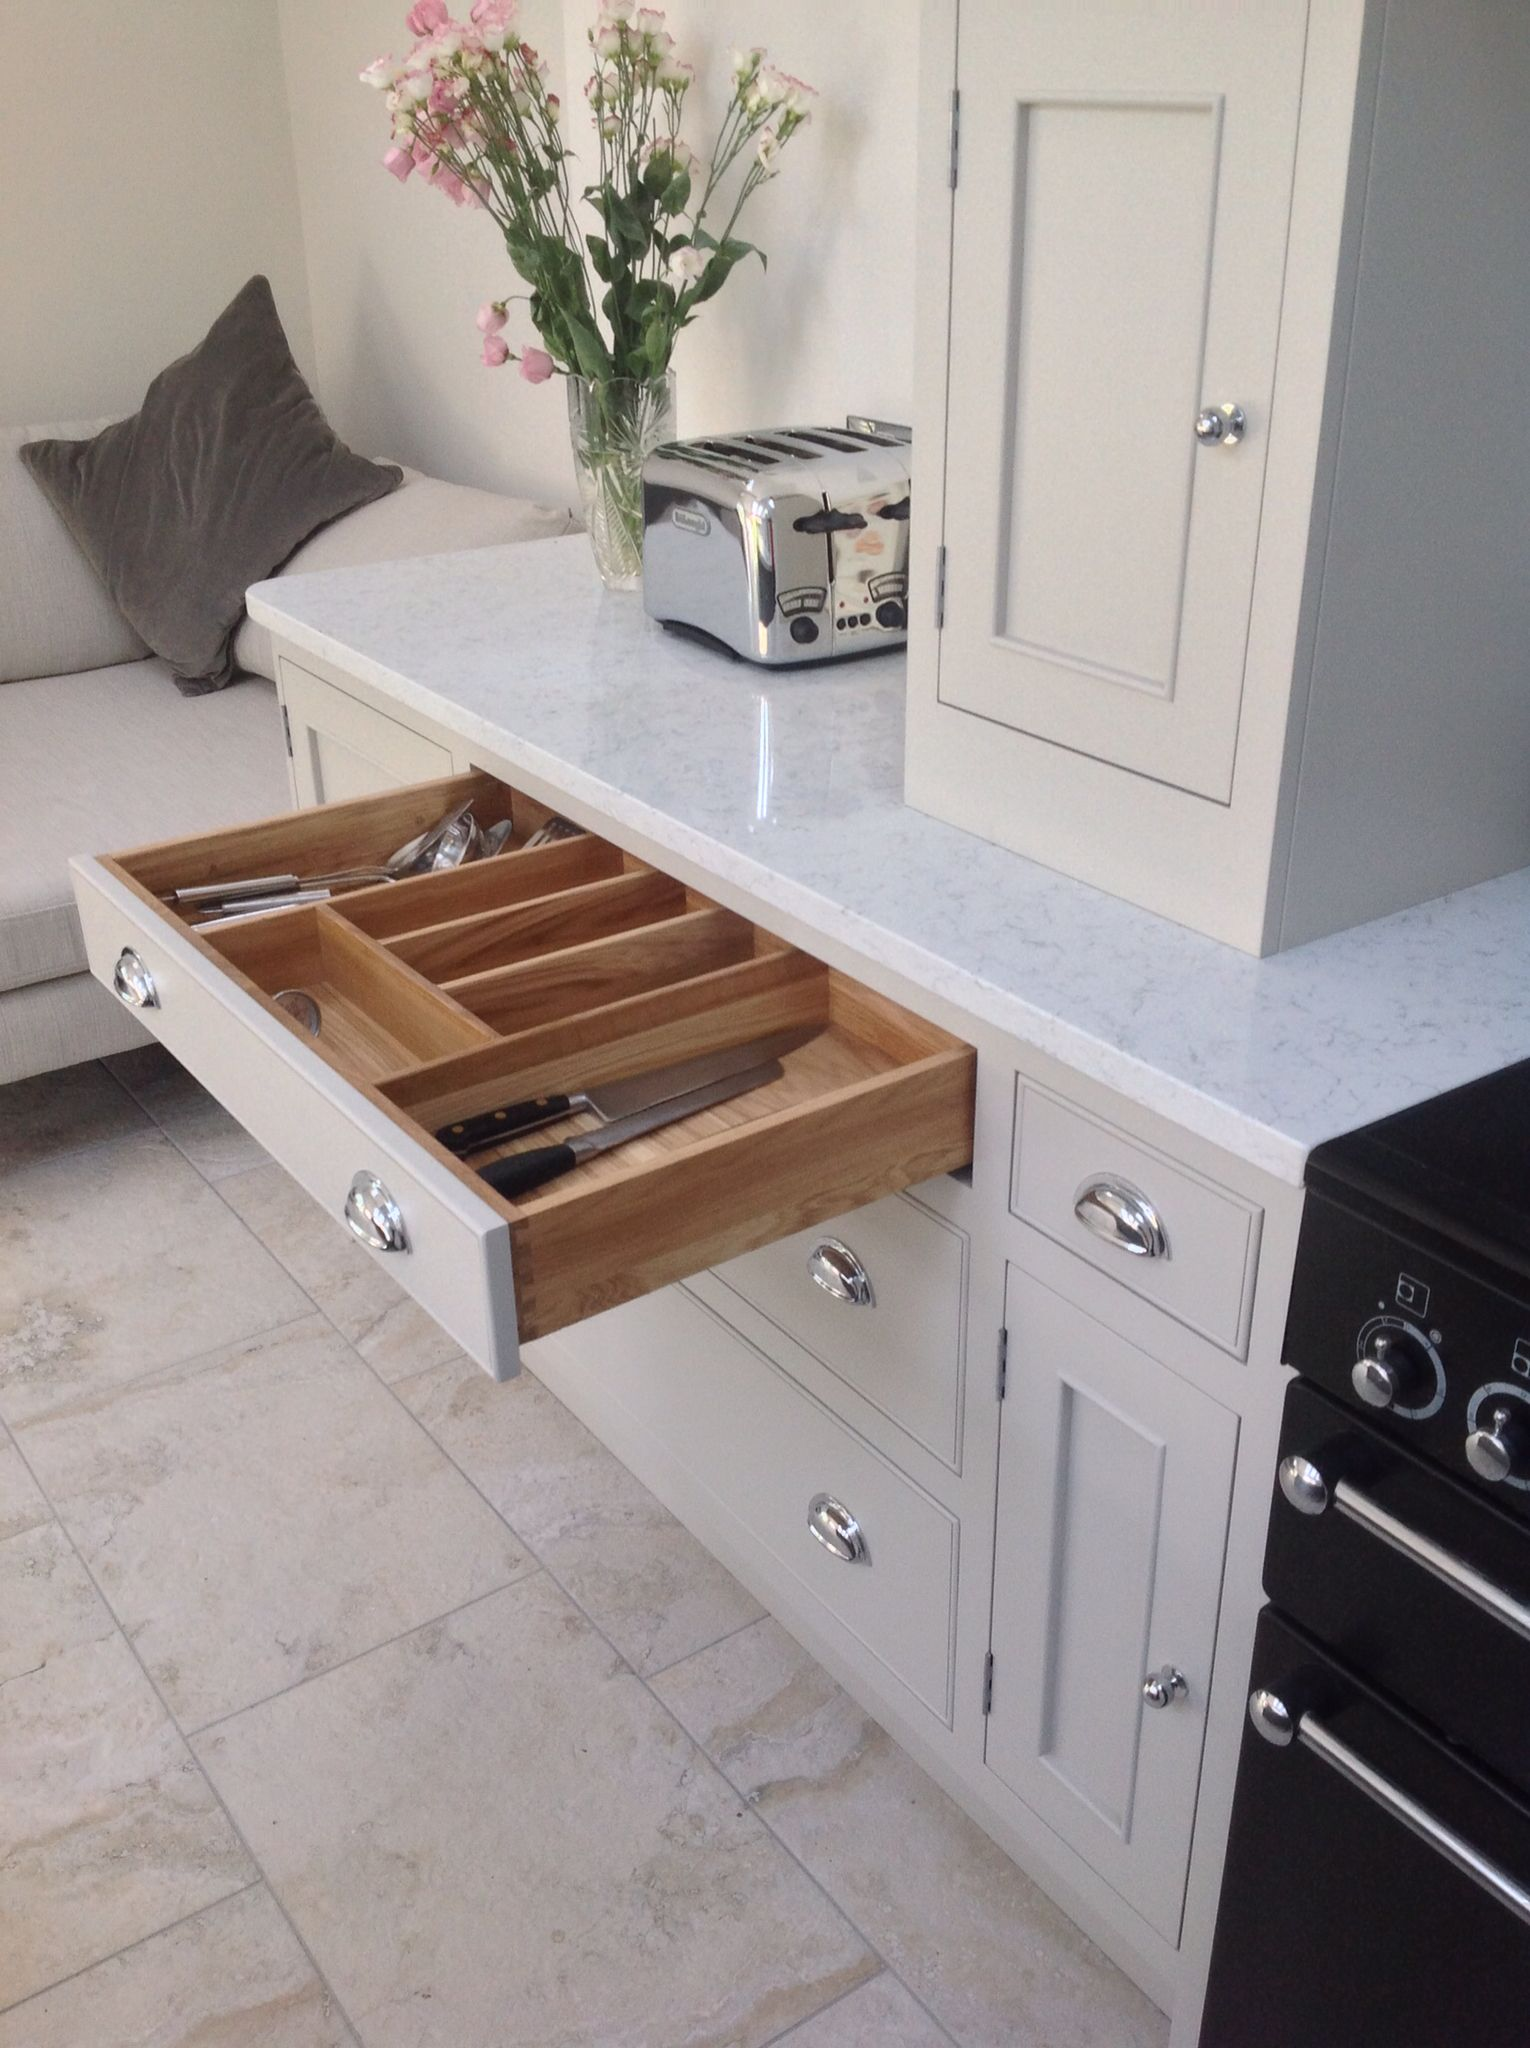 Best Dovetail Kitchens Cowling Farrow And Ball Purbeck Stone 400 x 300